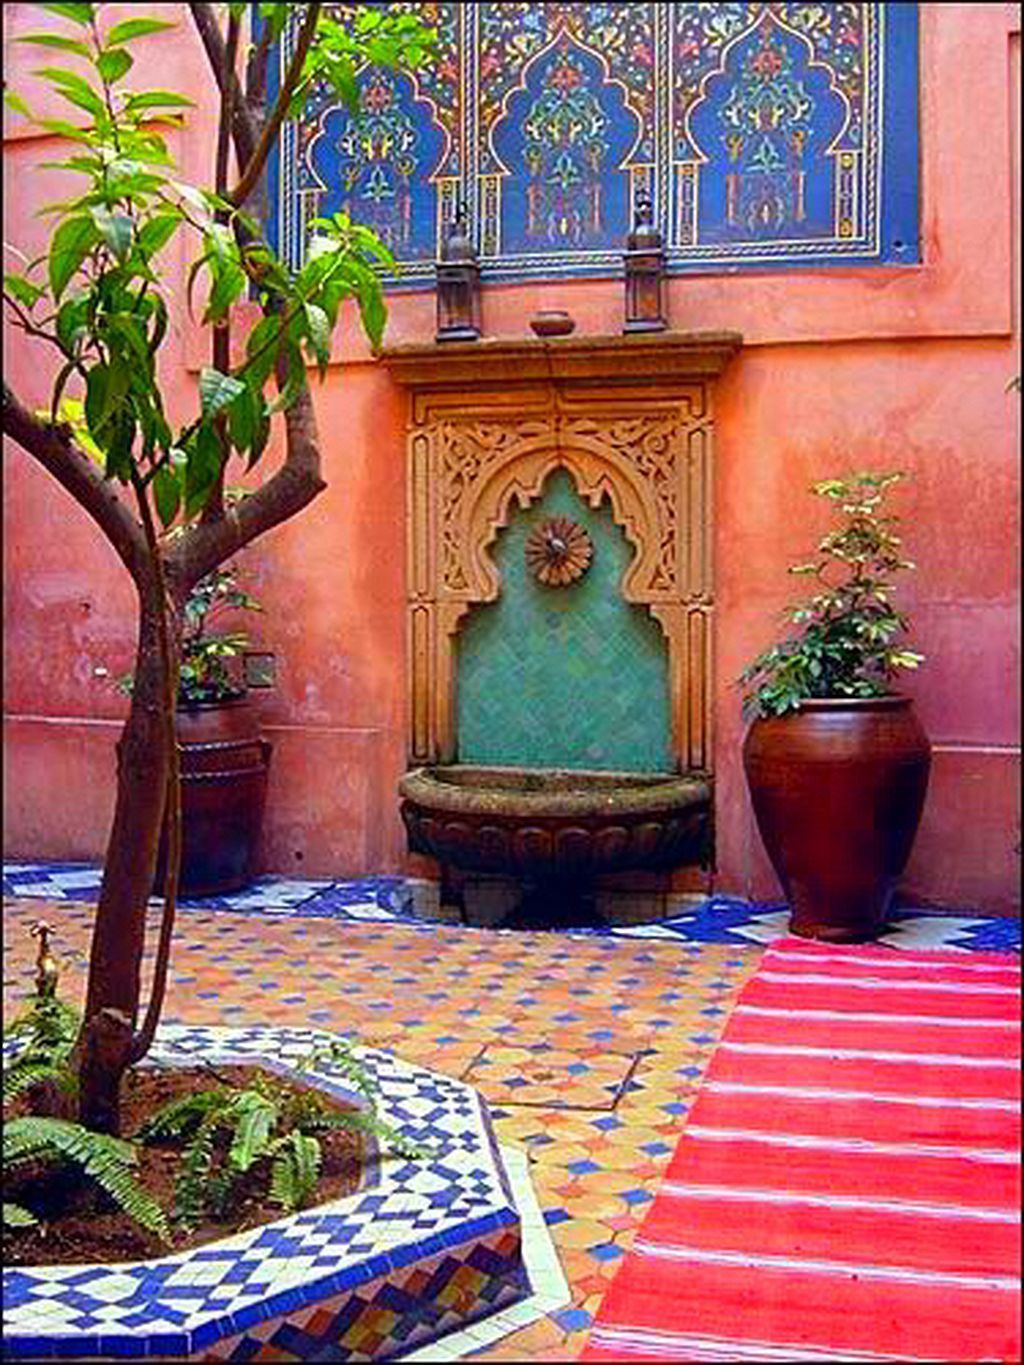 Home Decorating Ideas Moroccan Style Bedroom Home Decorating Ideas: 100 Moroccan Home Decor Ideas 7